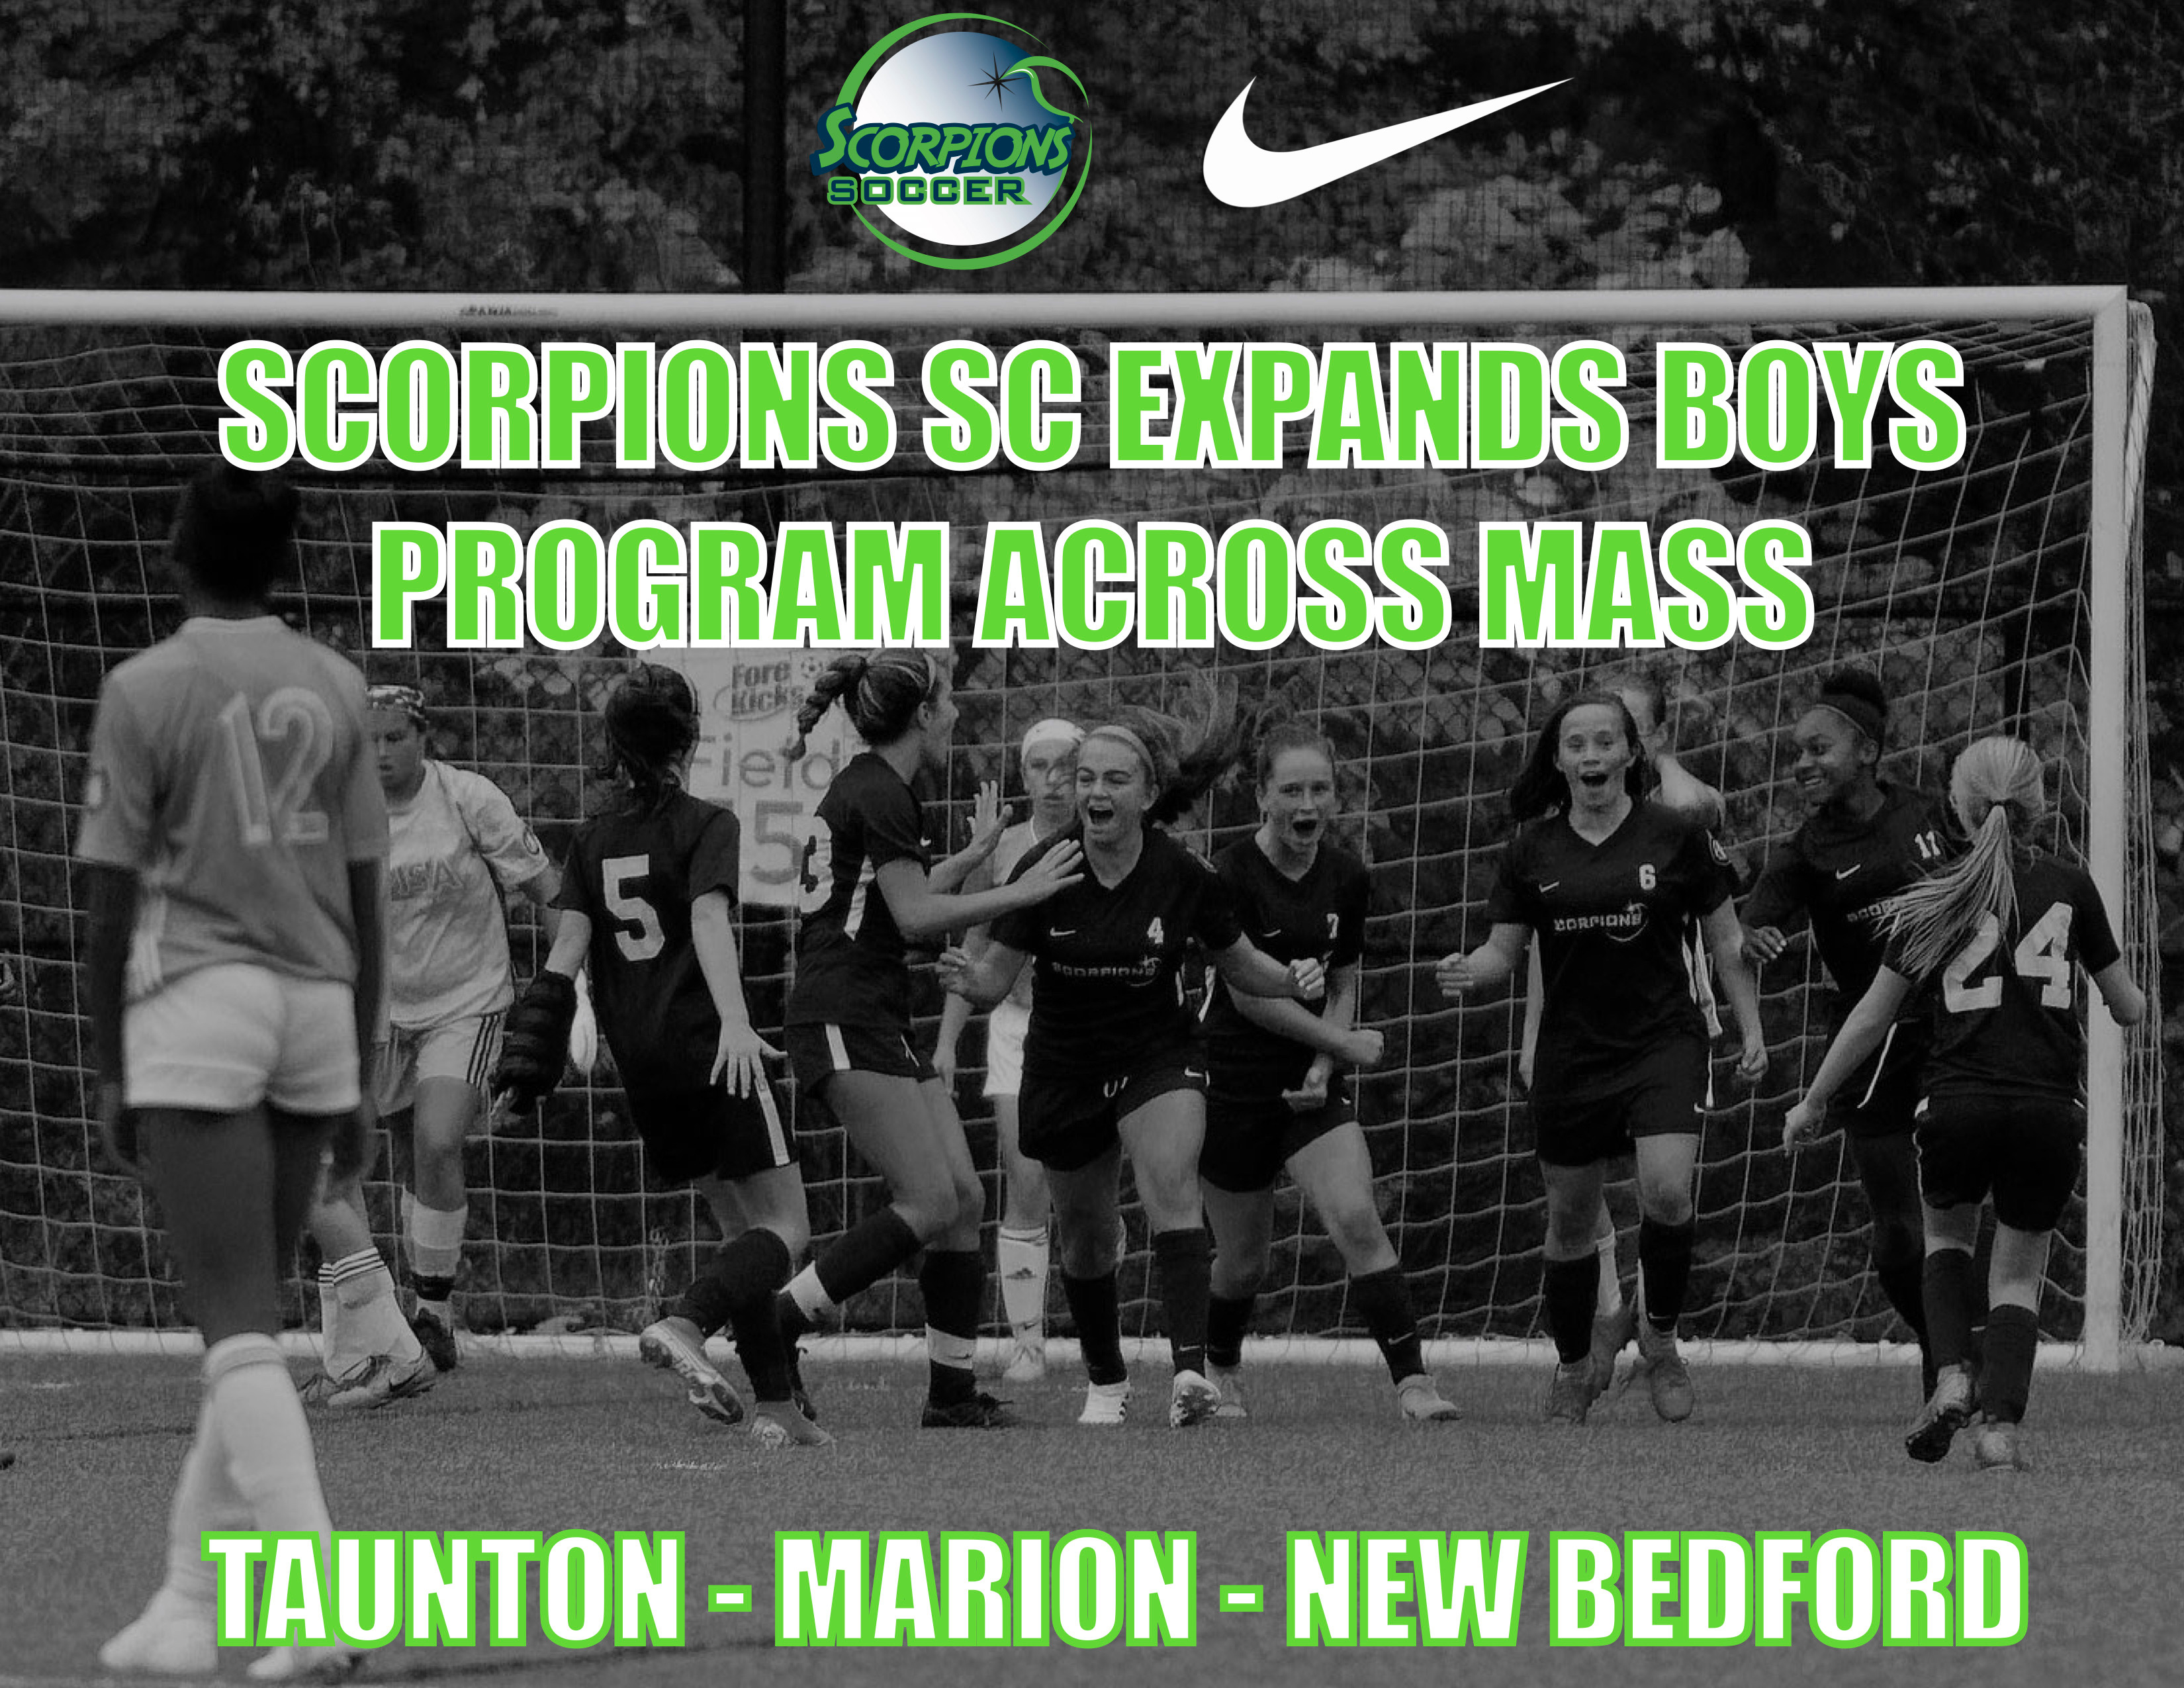 SCORPIONS SC EXPANDS BOYS PROGRAM ACROSS MASS !